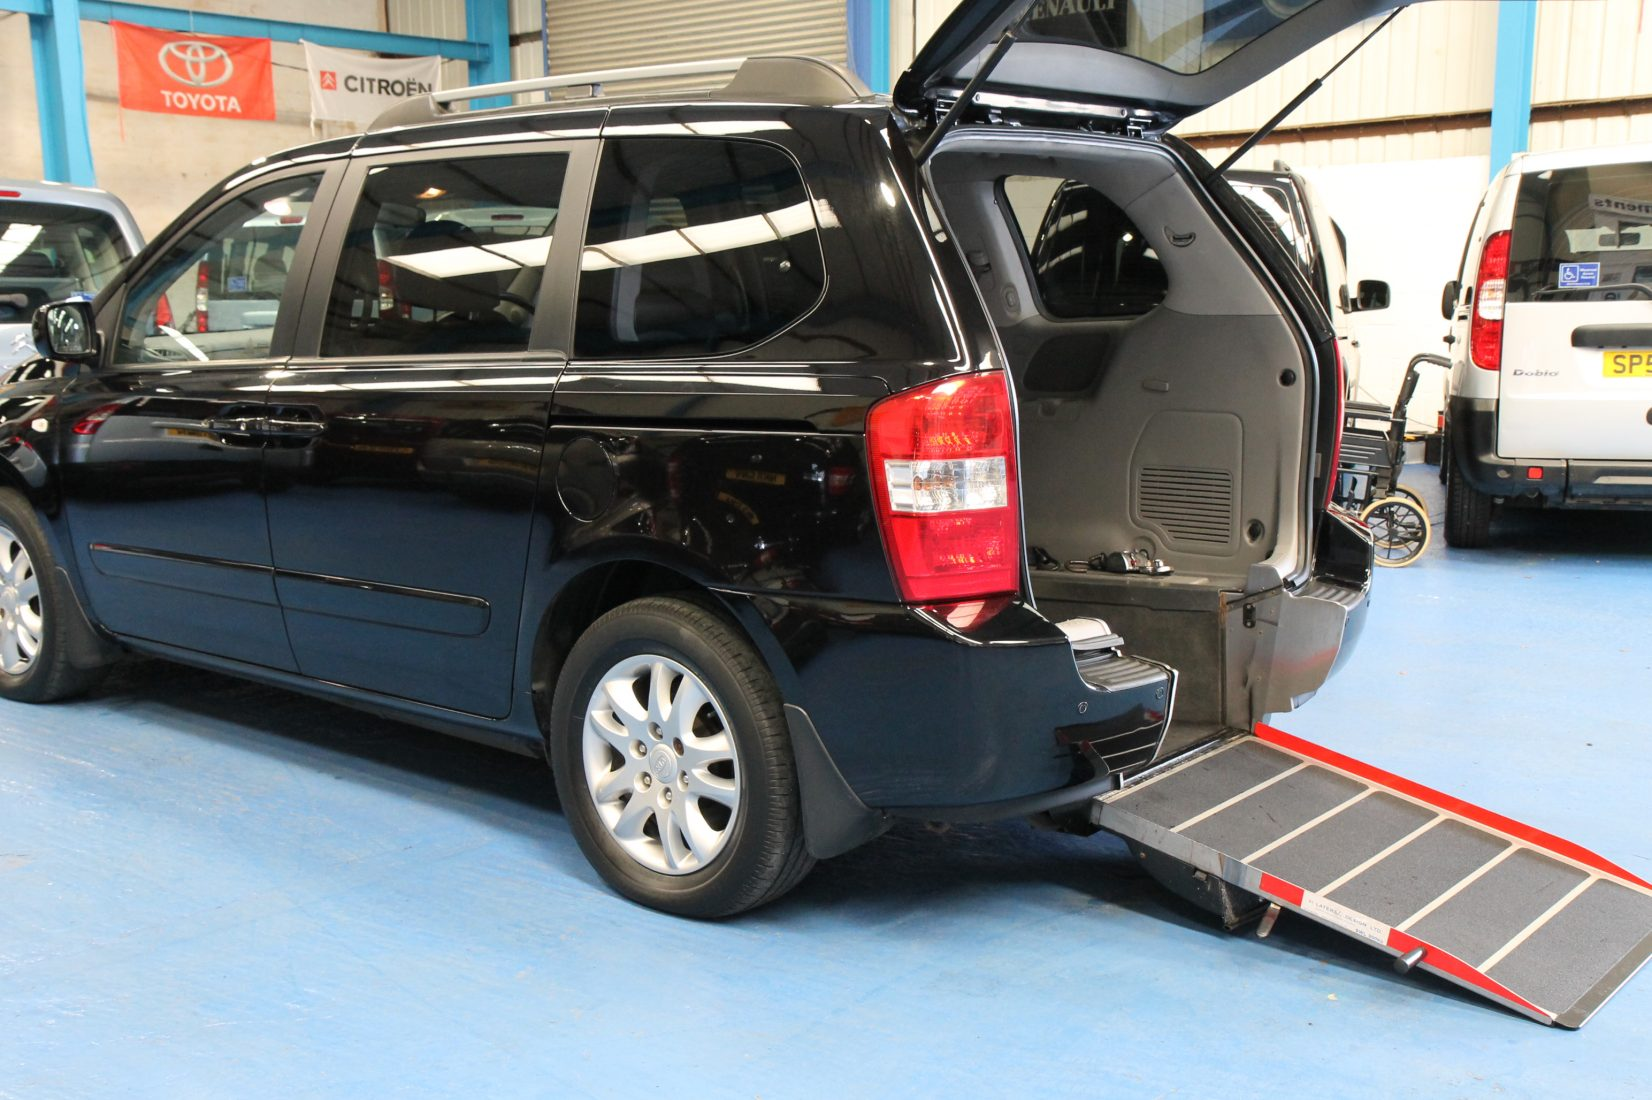 Kia Sedona Wheelchair Access Car Yj09avv Wheelchair